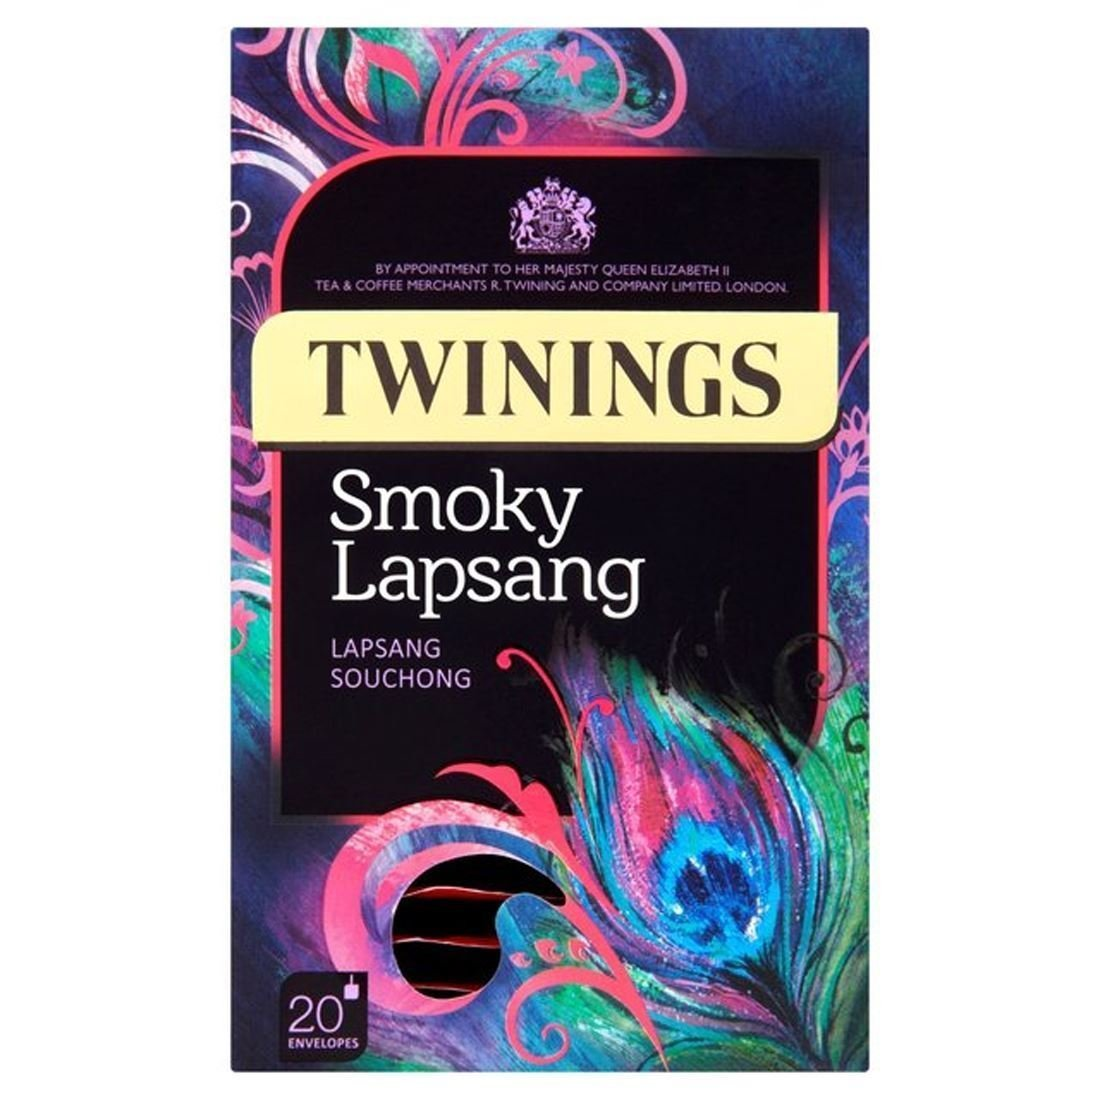 Twinings Smoky Lapsang Souchong Tea 20 per pack